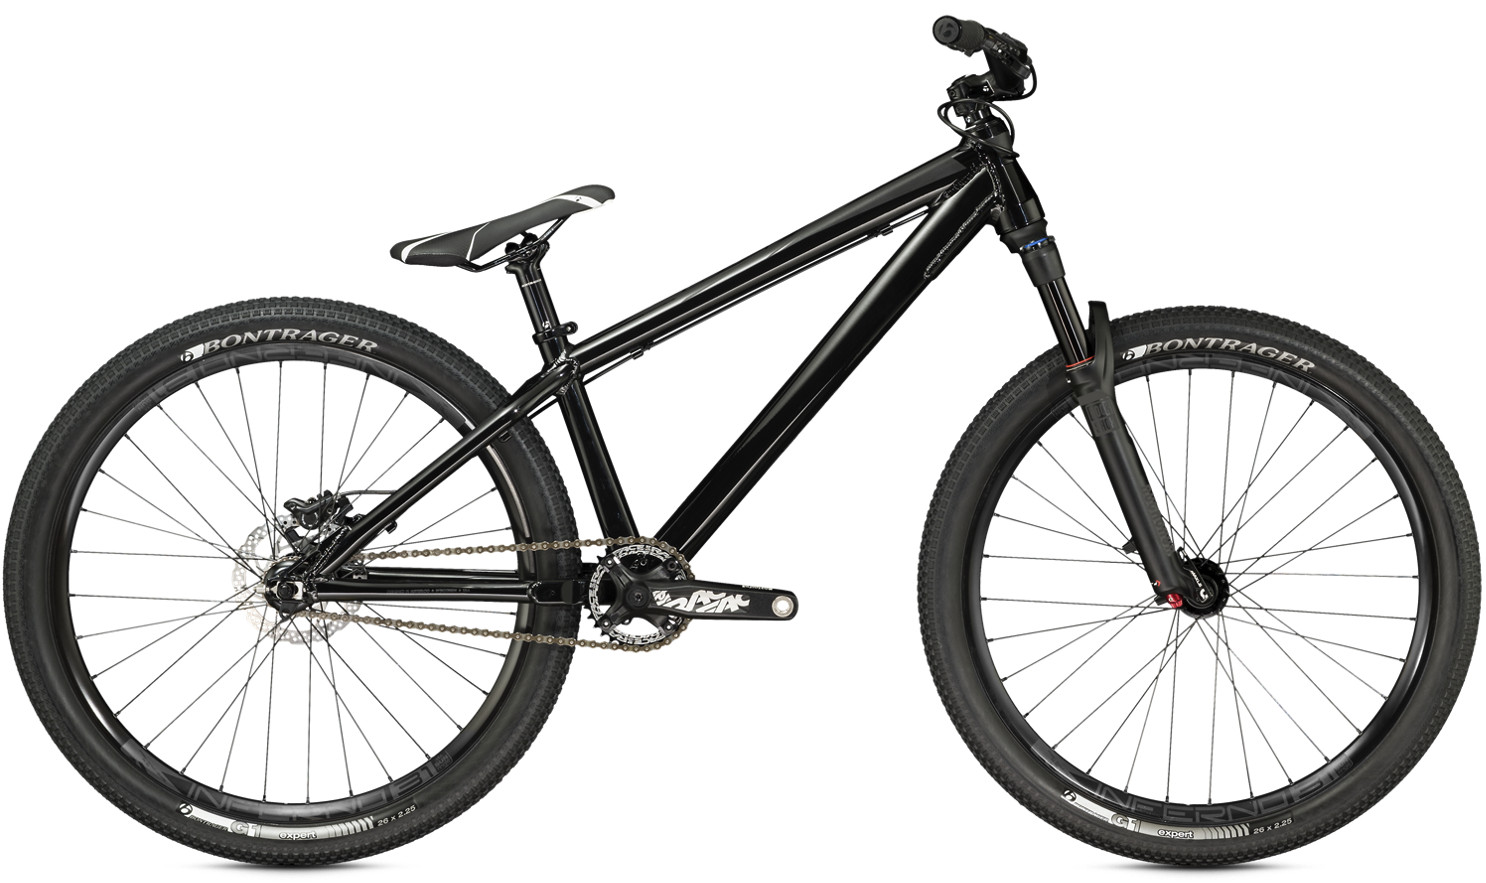 2015 Trek Ticket DJ Bike - Reviews, Comparisons, Specs - Mountain ...